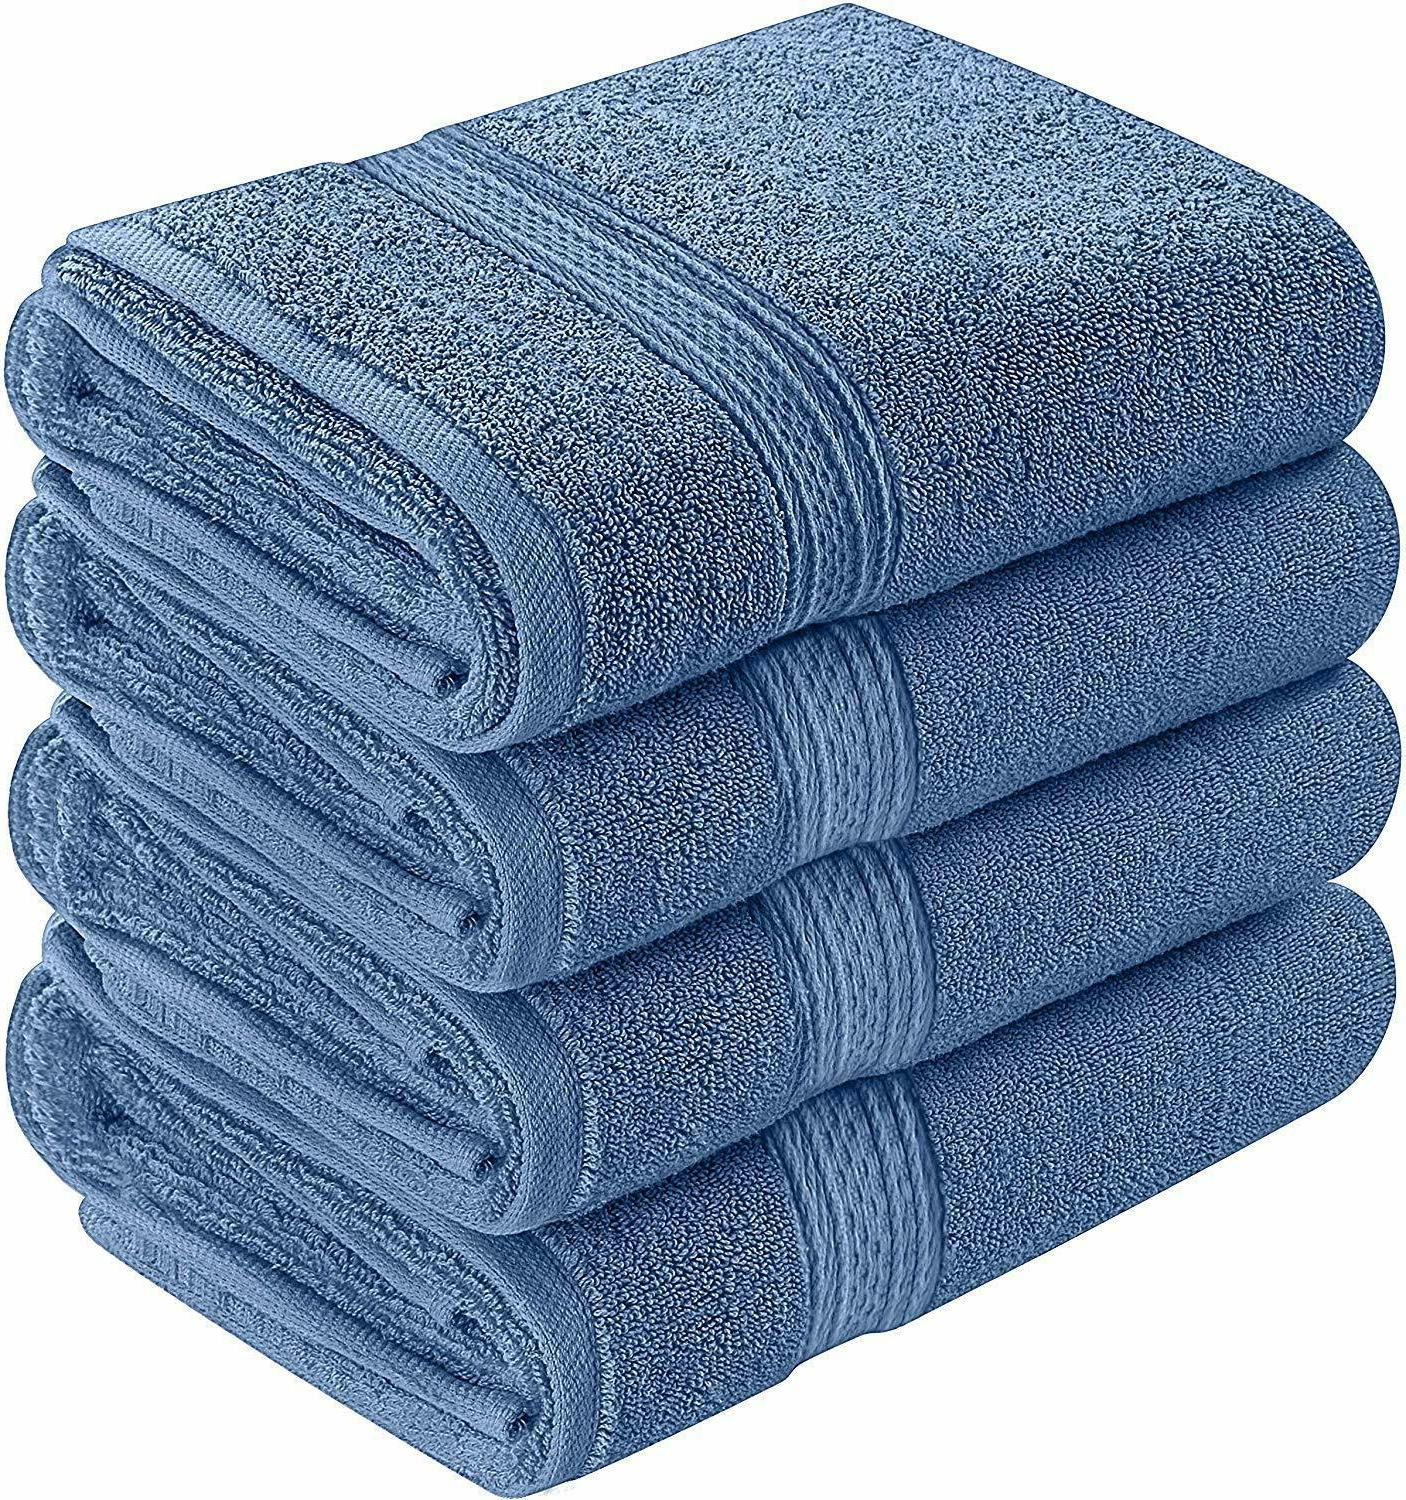 6 Premium Hand Towels Cotton 28 Inches Towels